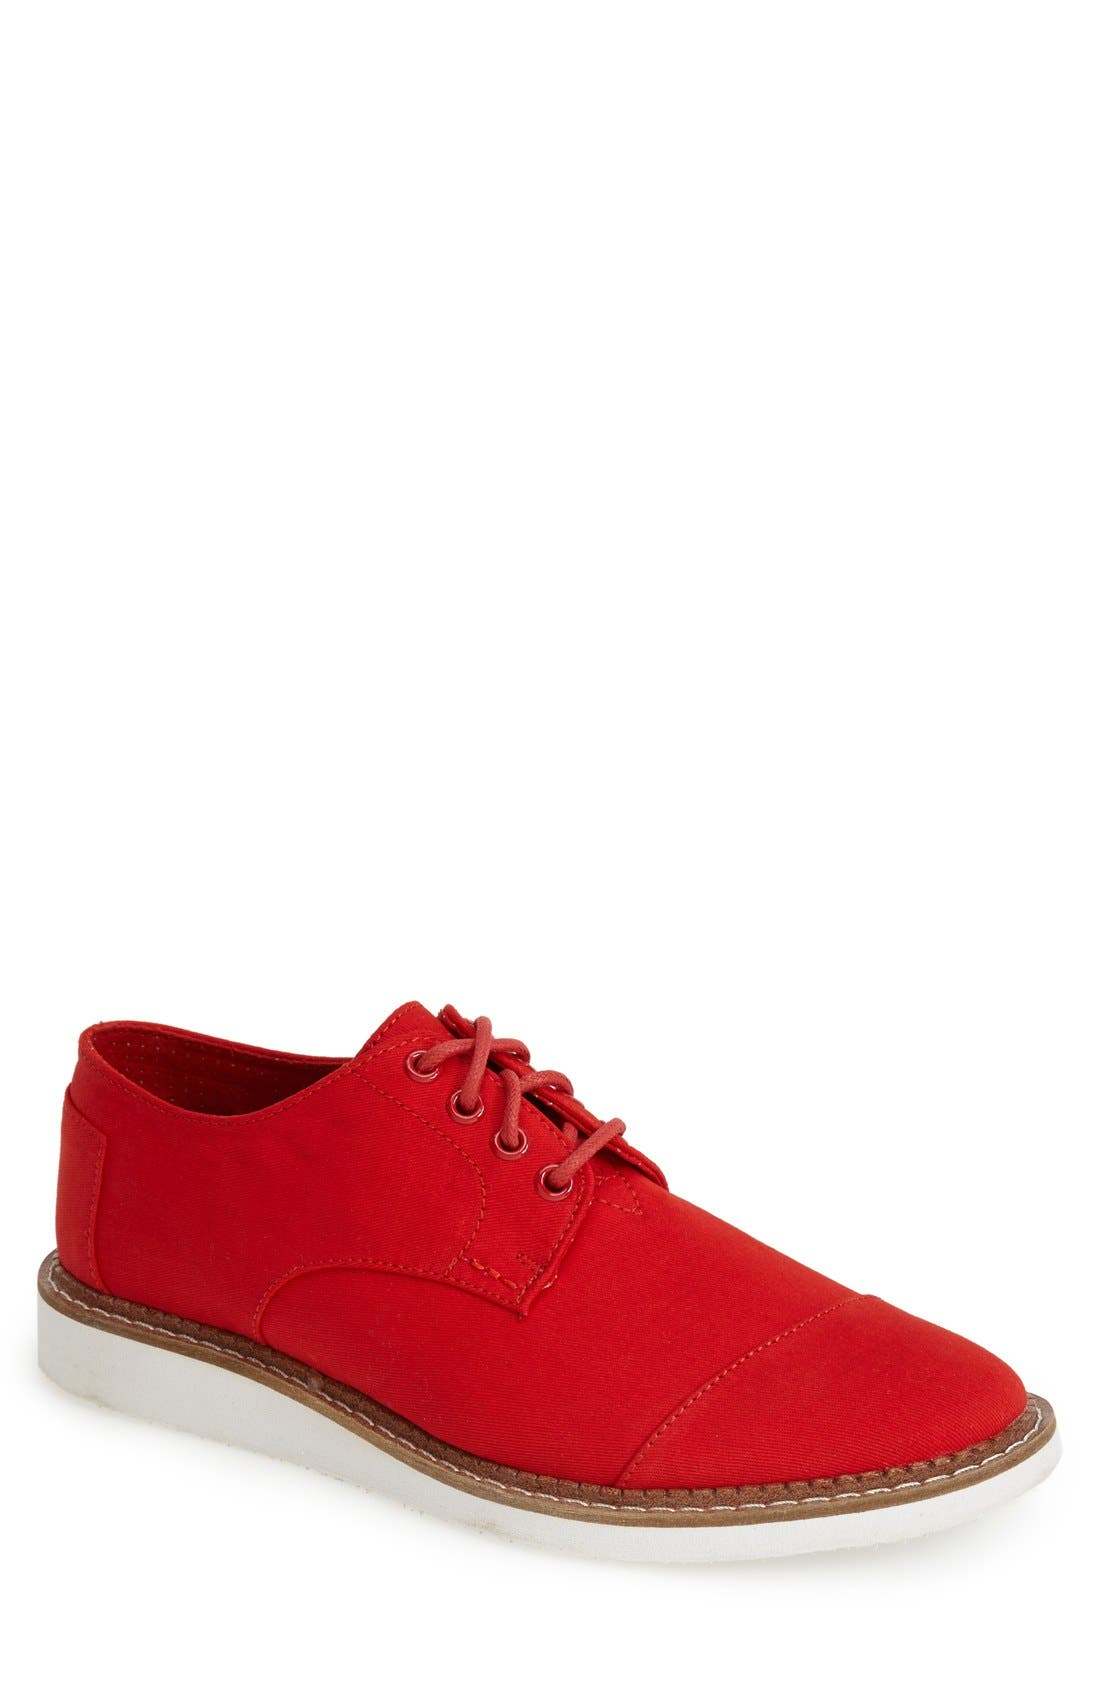 'Classic Brogue' Cotton Twill Derby,                             Main thumbnail 15, color,